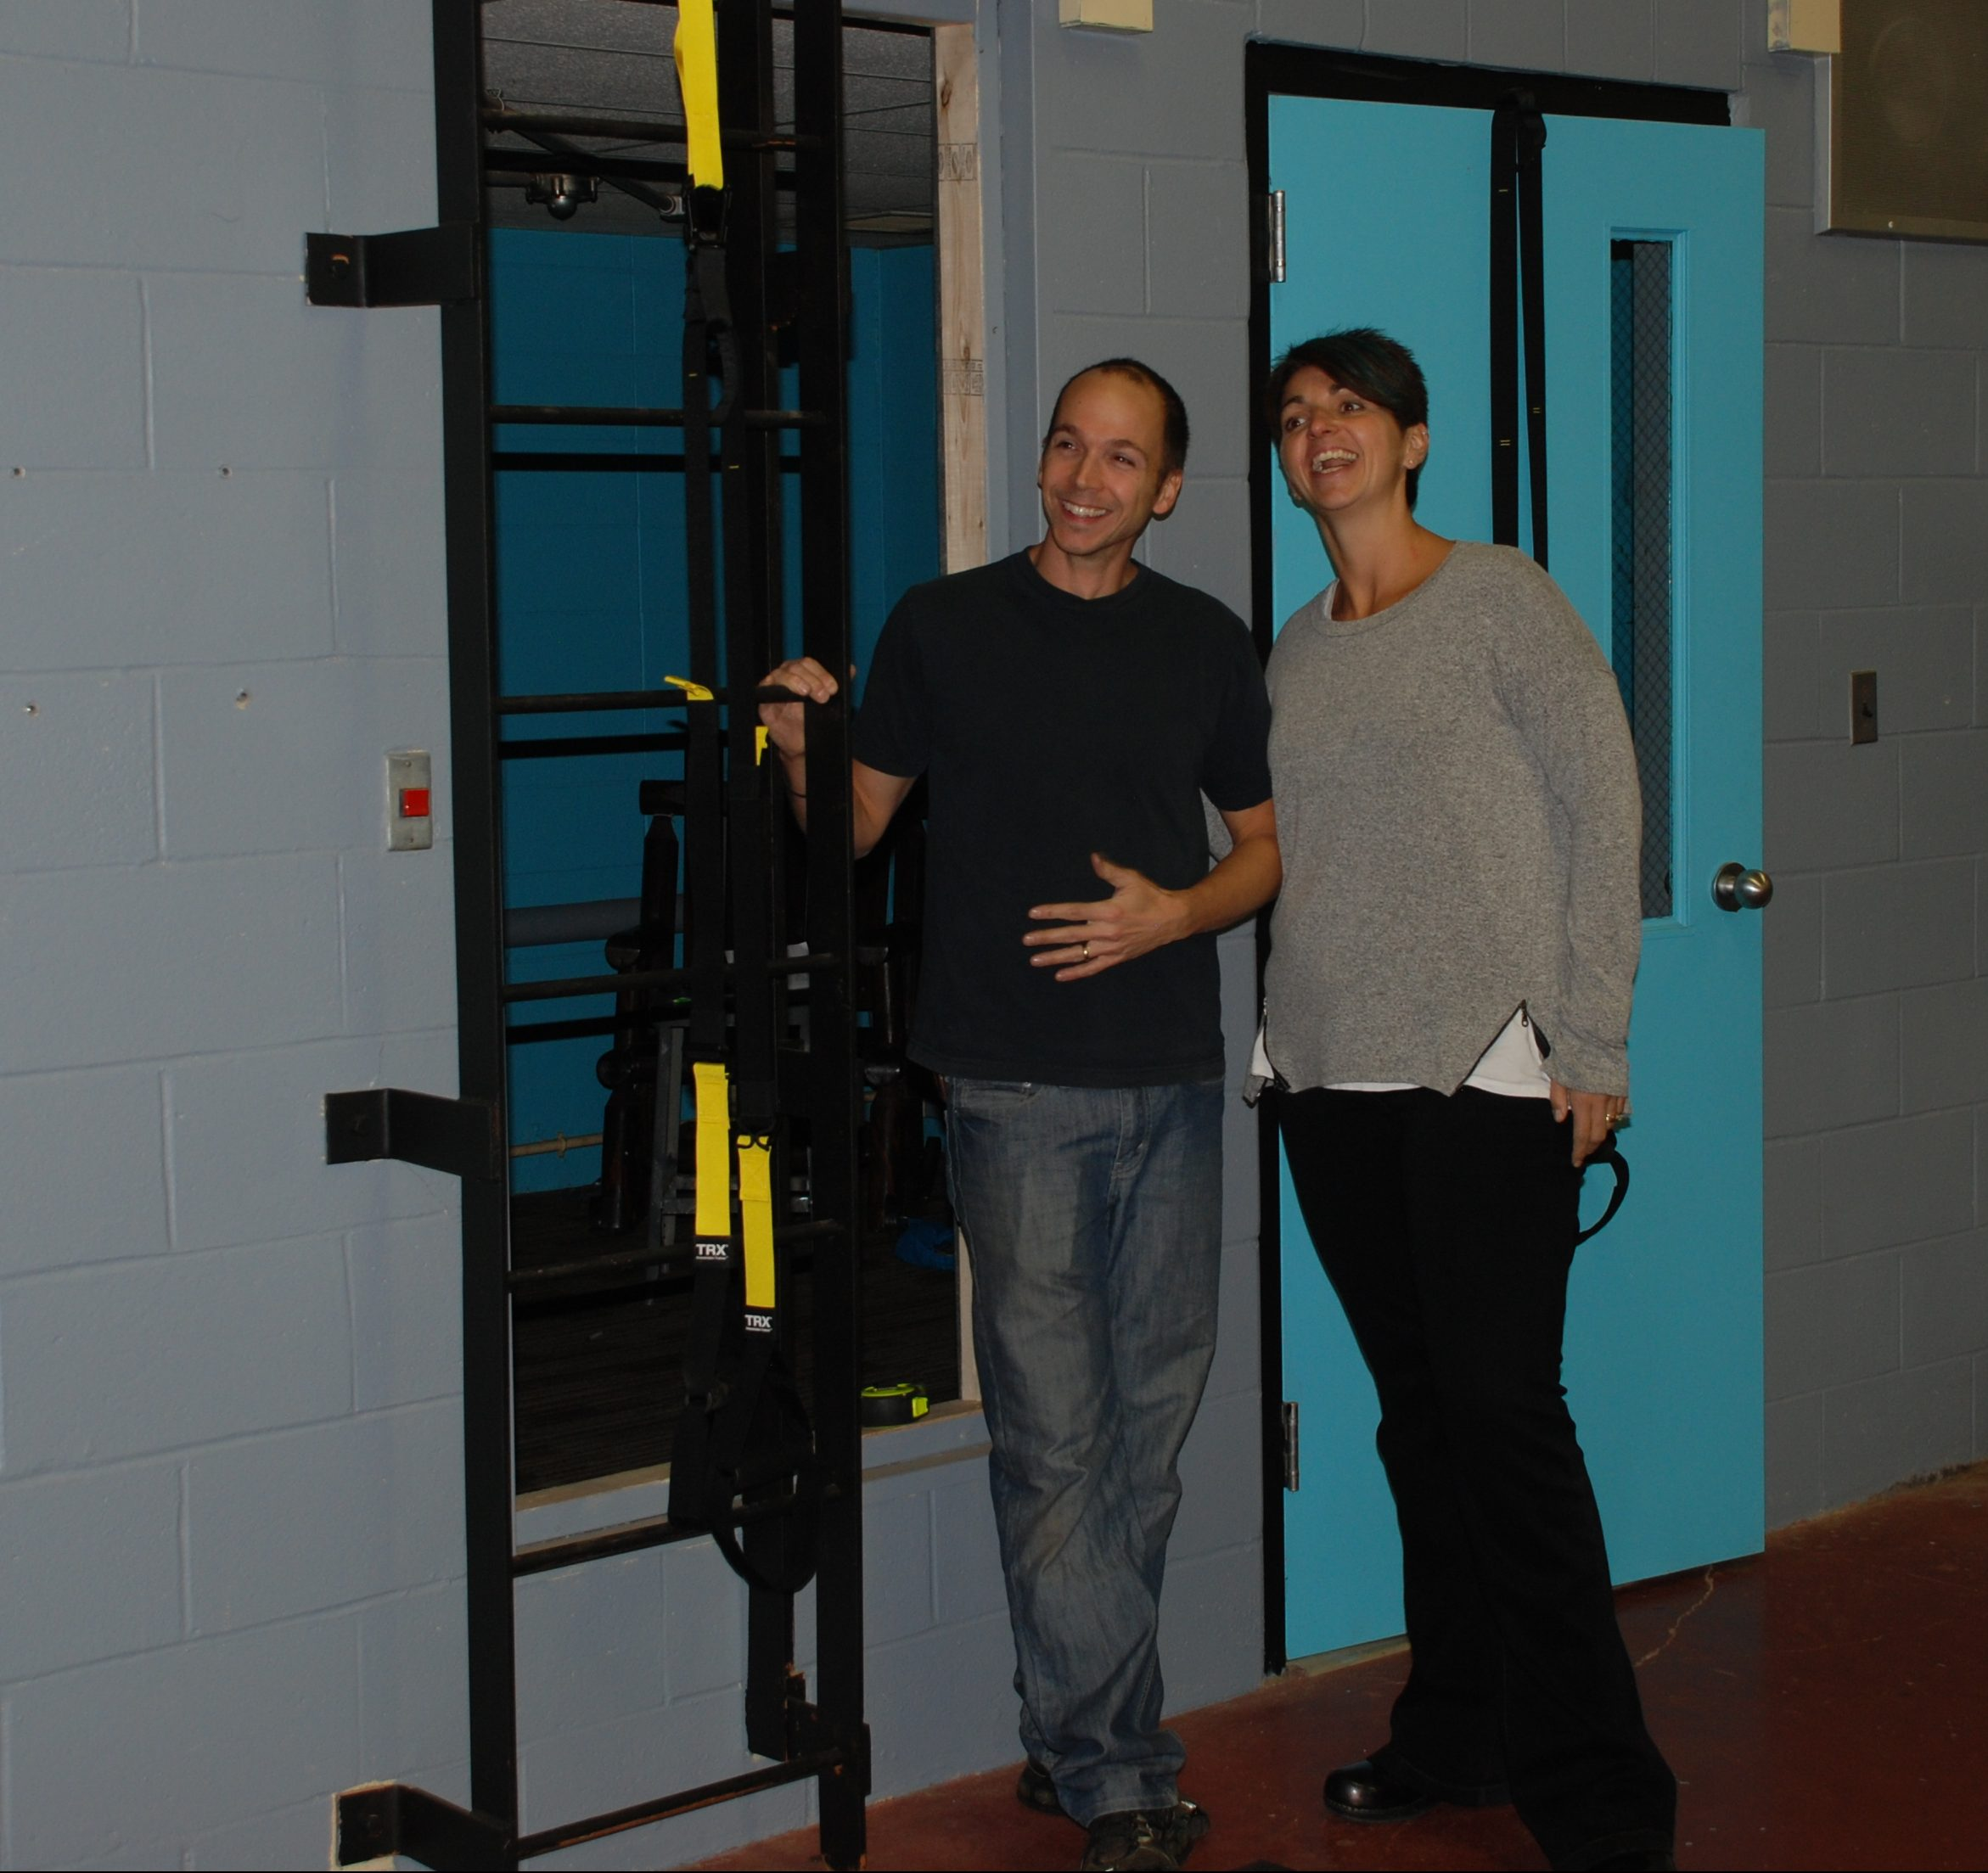 Dominic and Betsy Mancine beside a TRX suspension training rig.